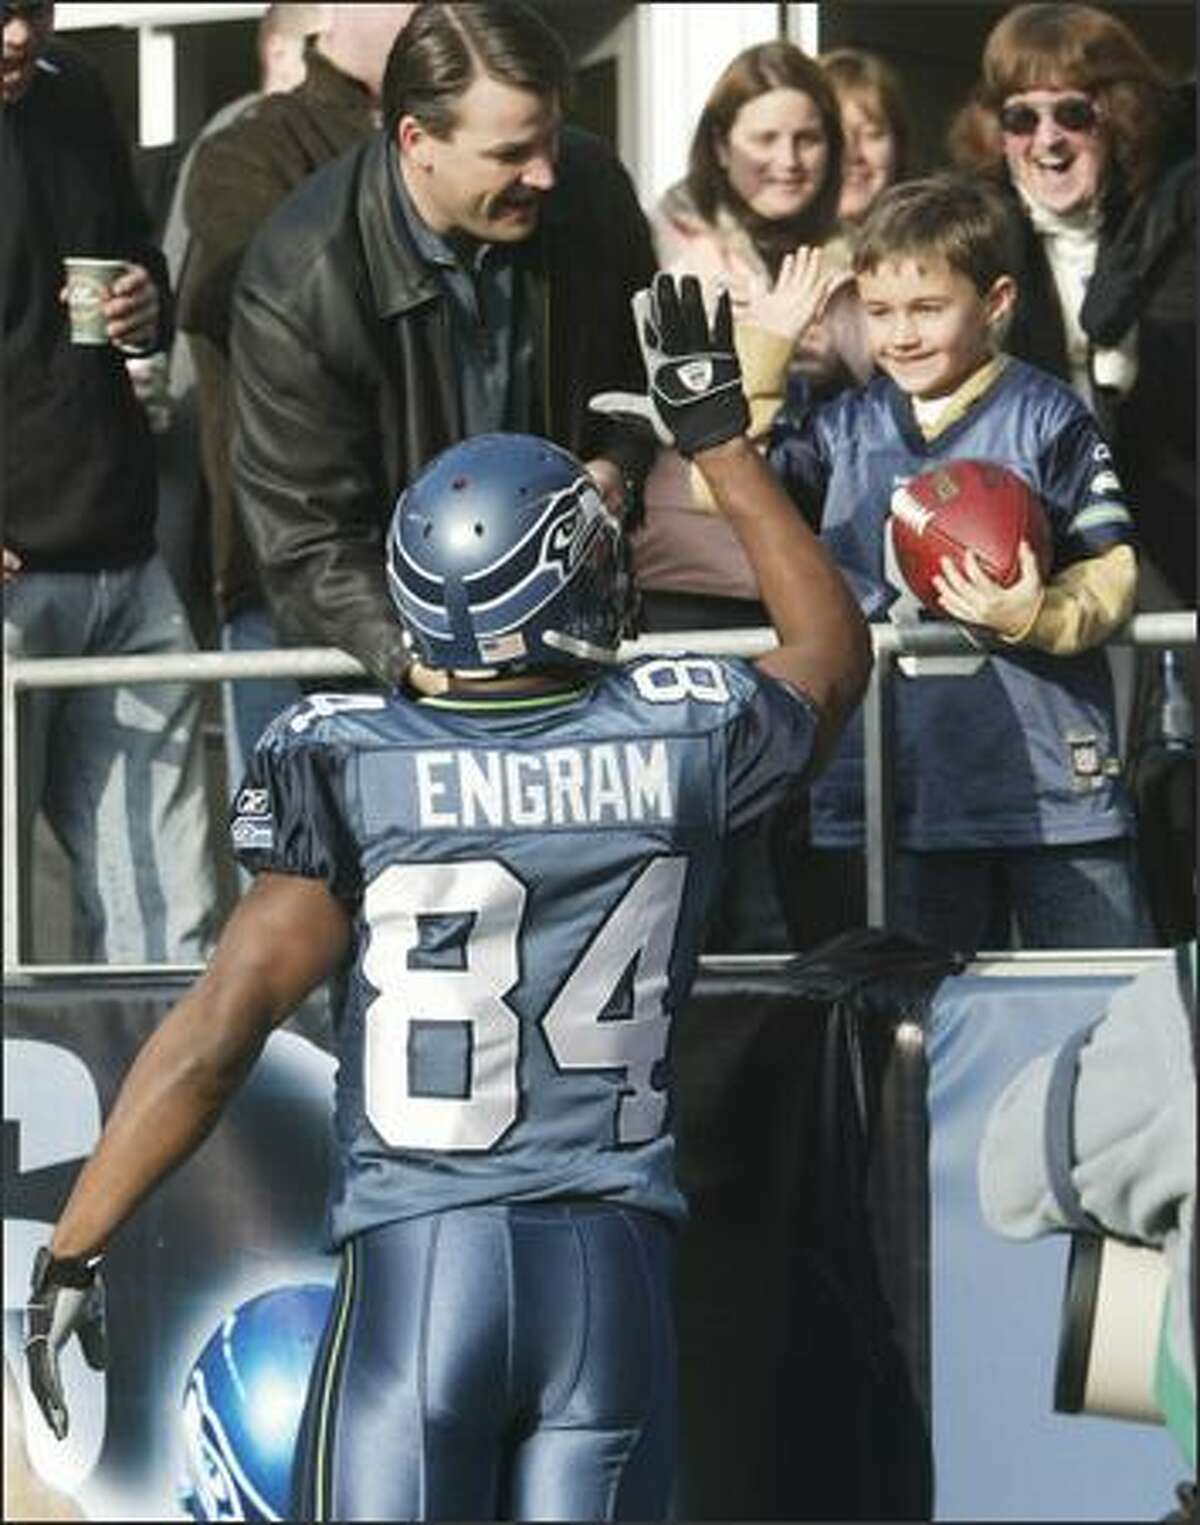 After scoring a touchdown and handing him the football, Seahawks' Bobby Engram gives Gabe Lysen, 7, a high five. With Gabe is his dad Zac Lysen.